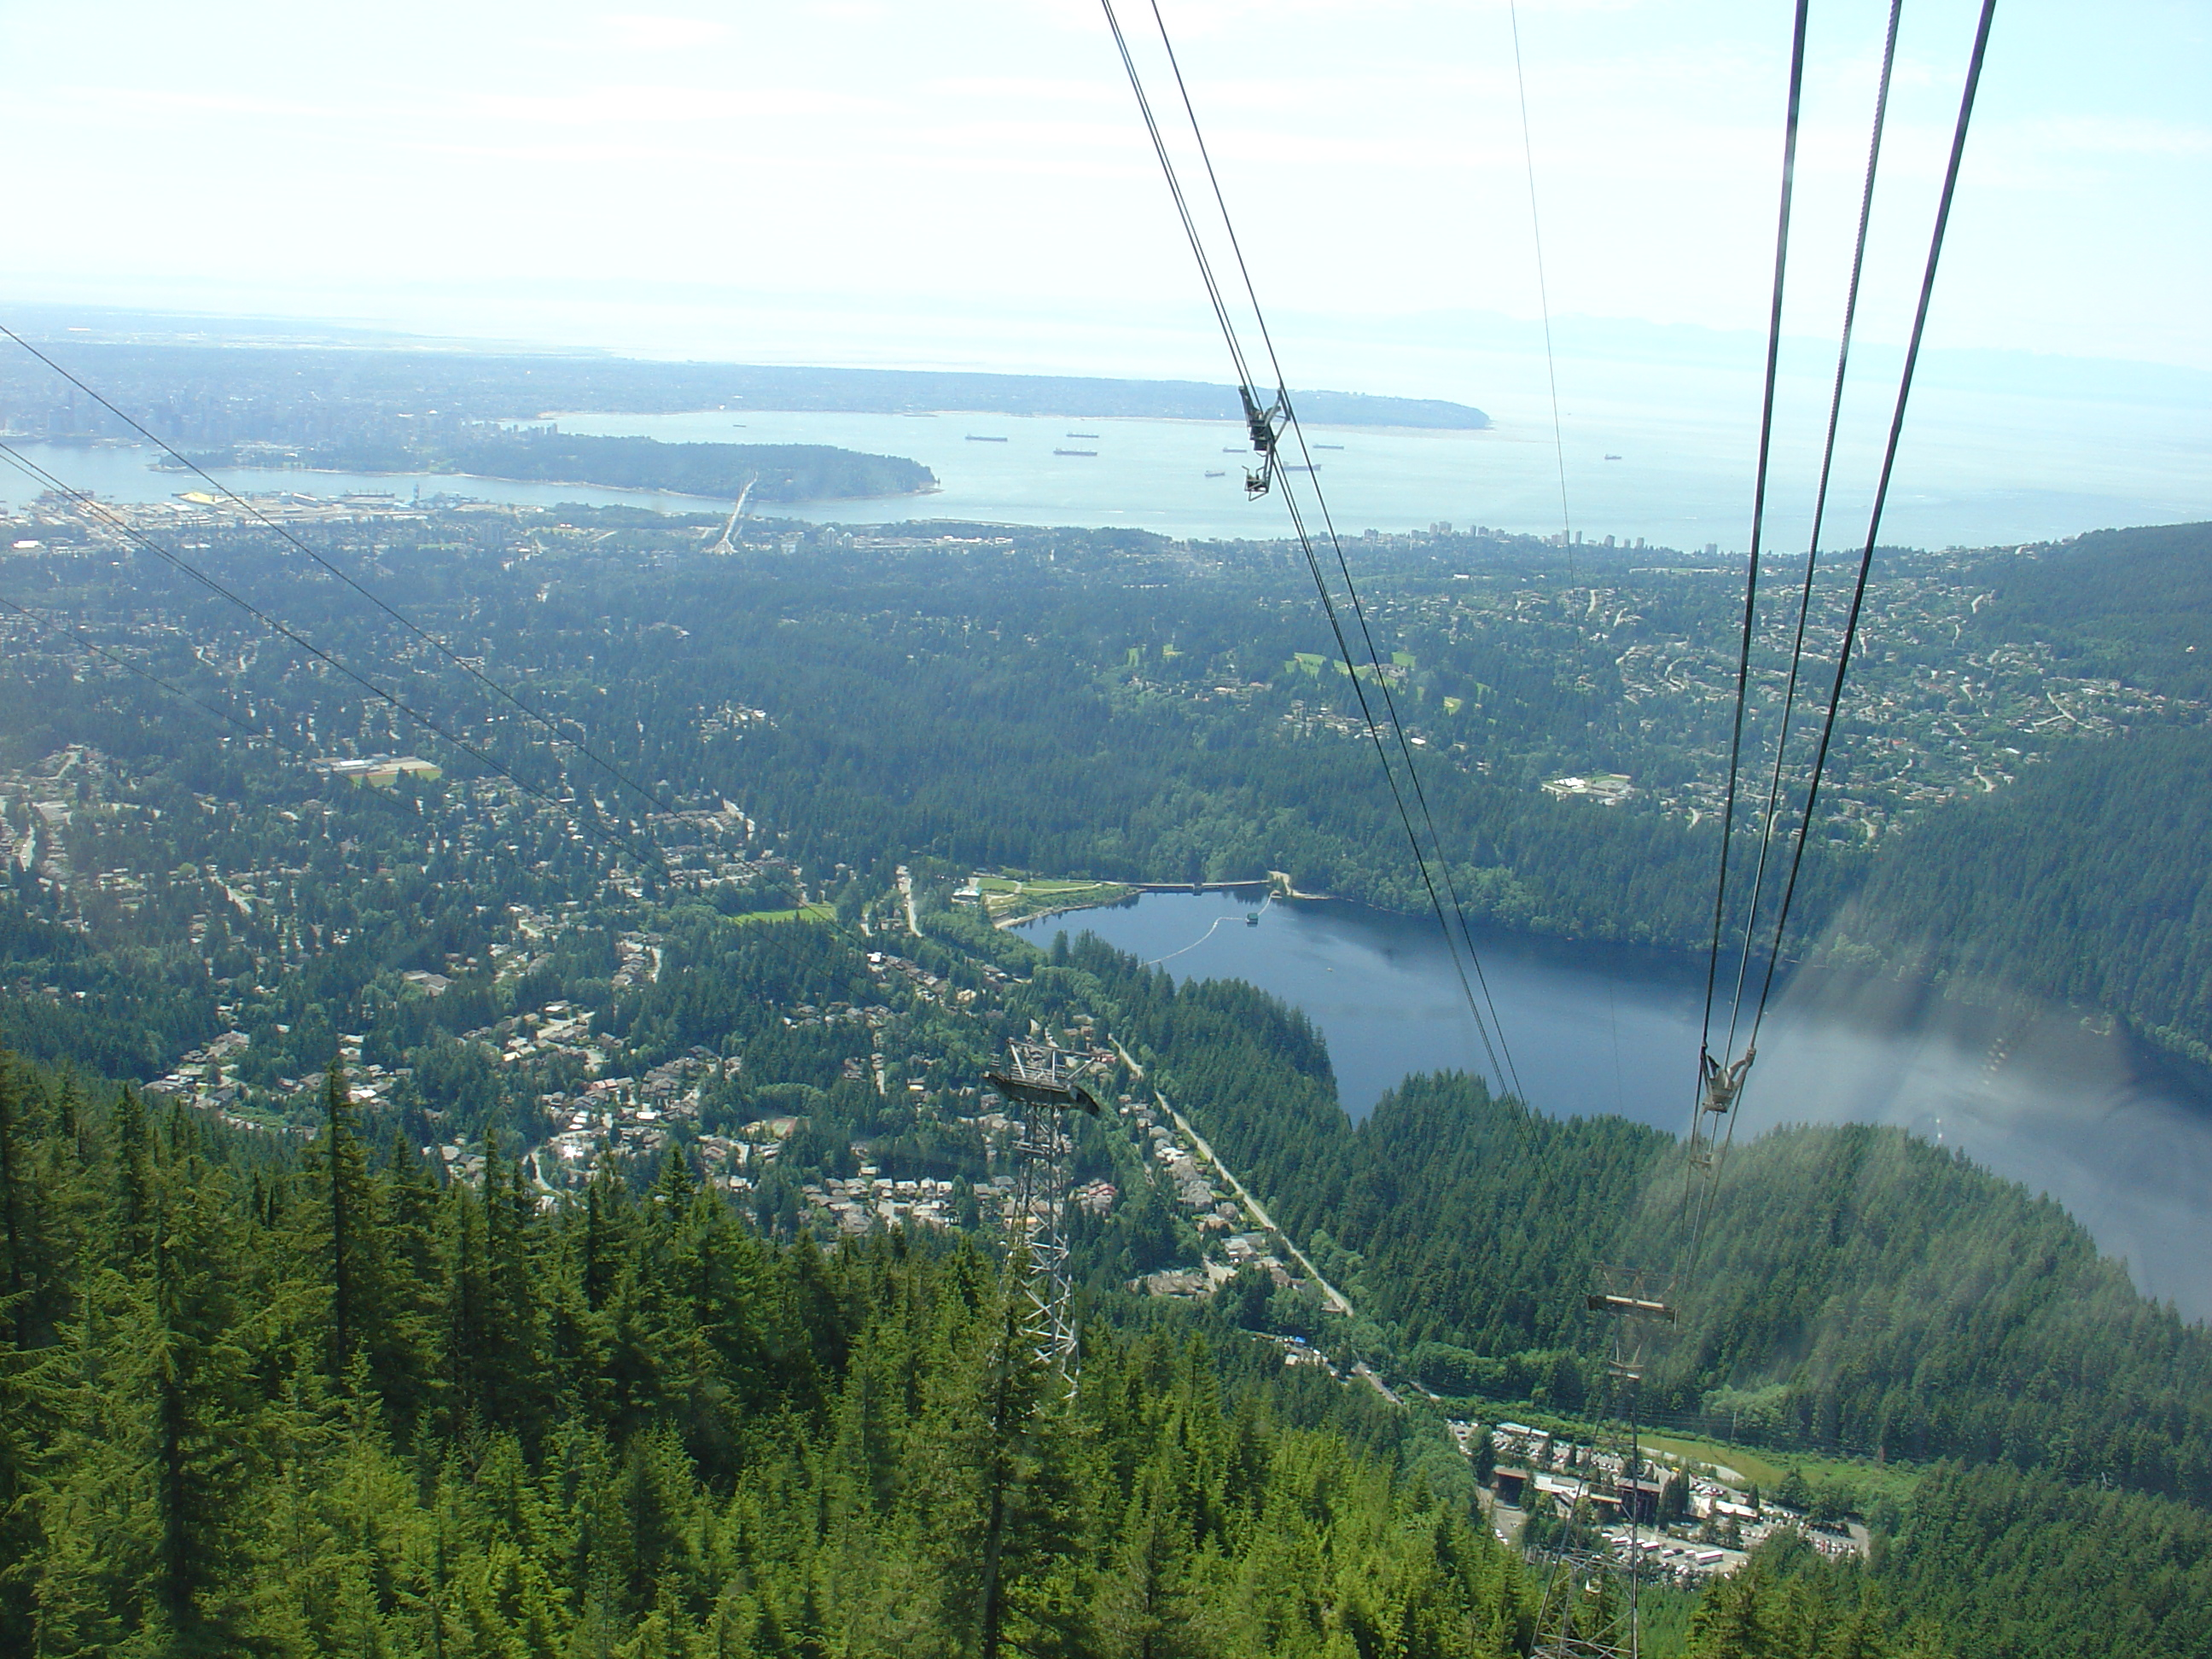 Went To Grouse Mt On My Final Day There The Only One Not Threatening Rain Where Is Skiing In Winter Except For Olympics